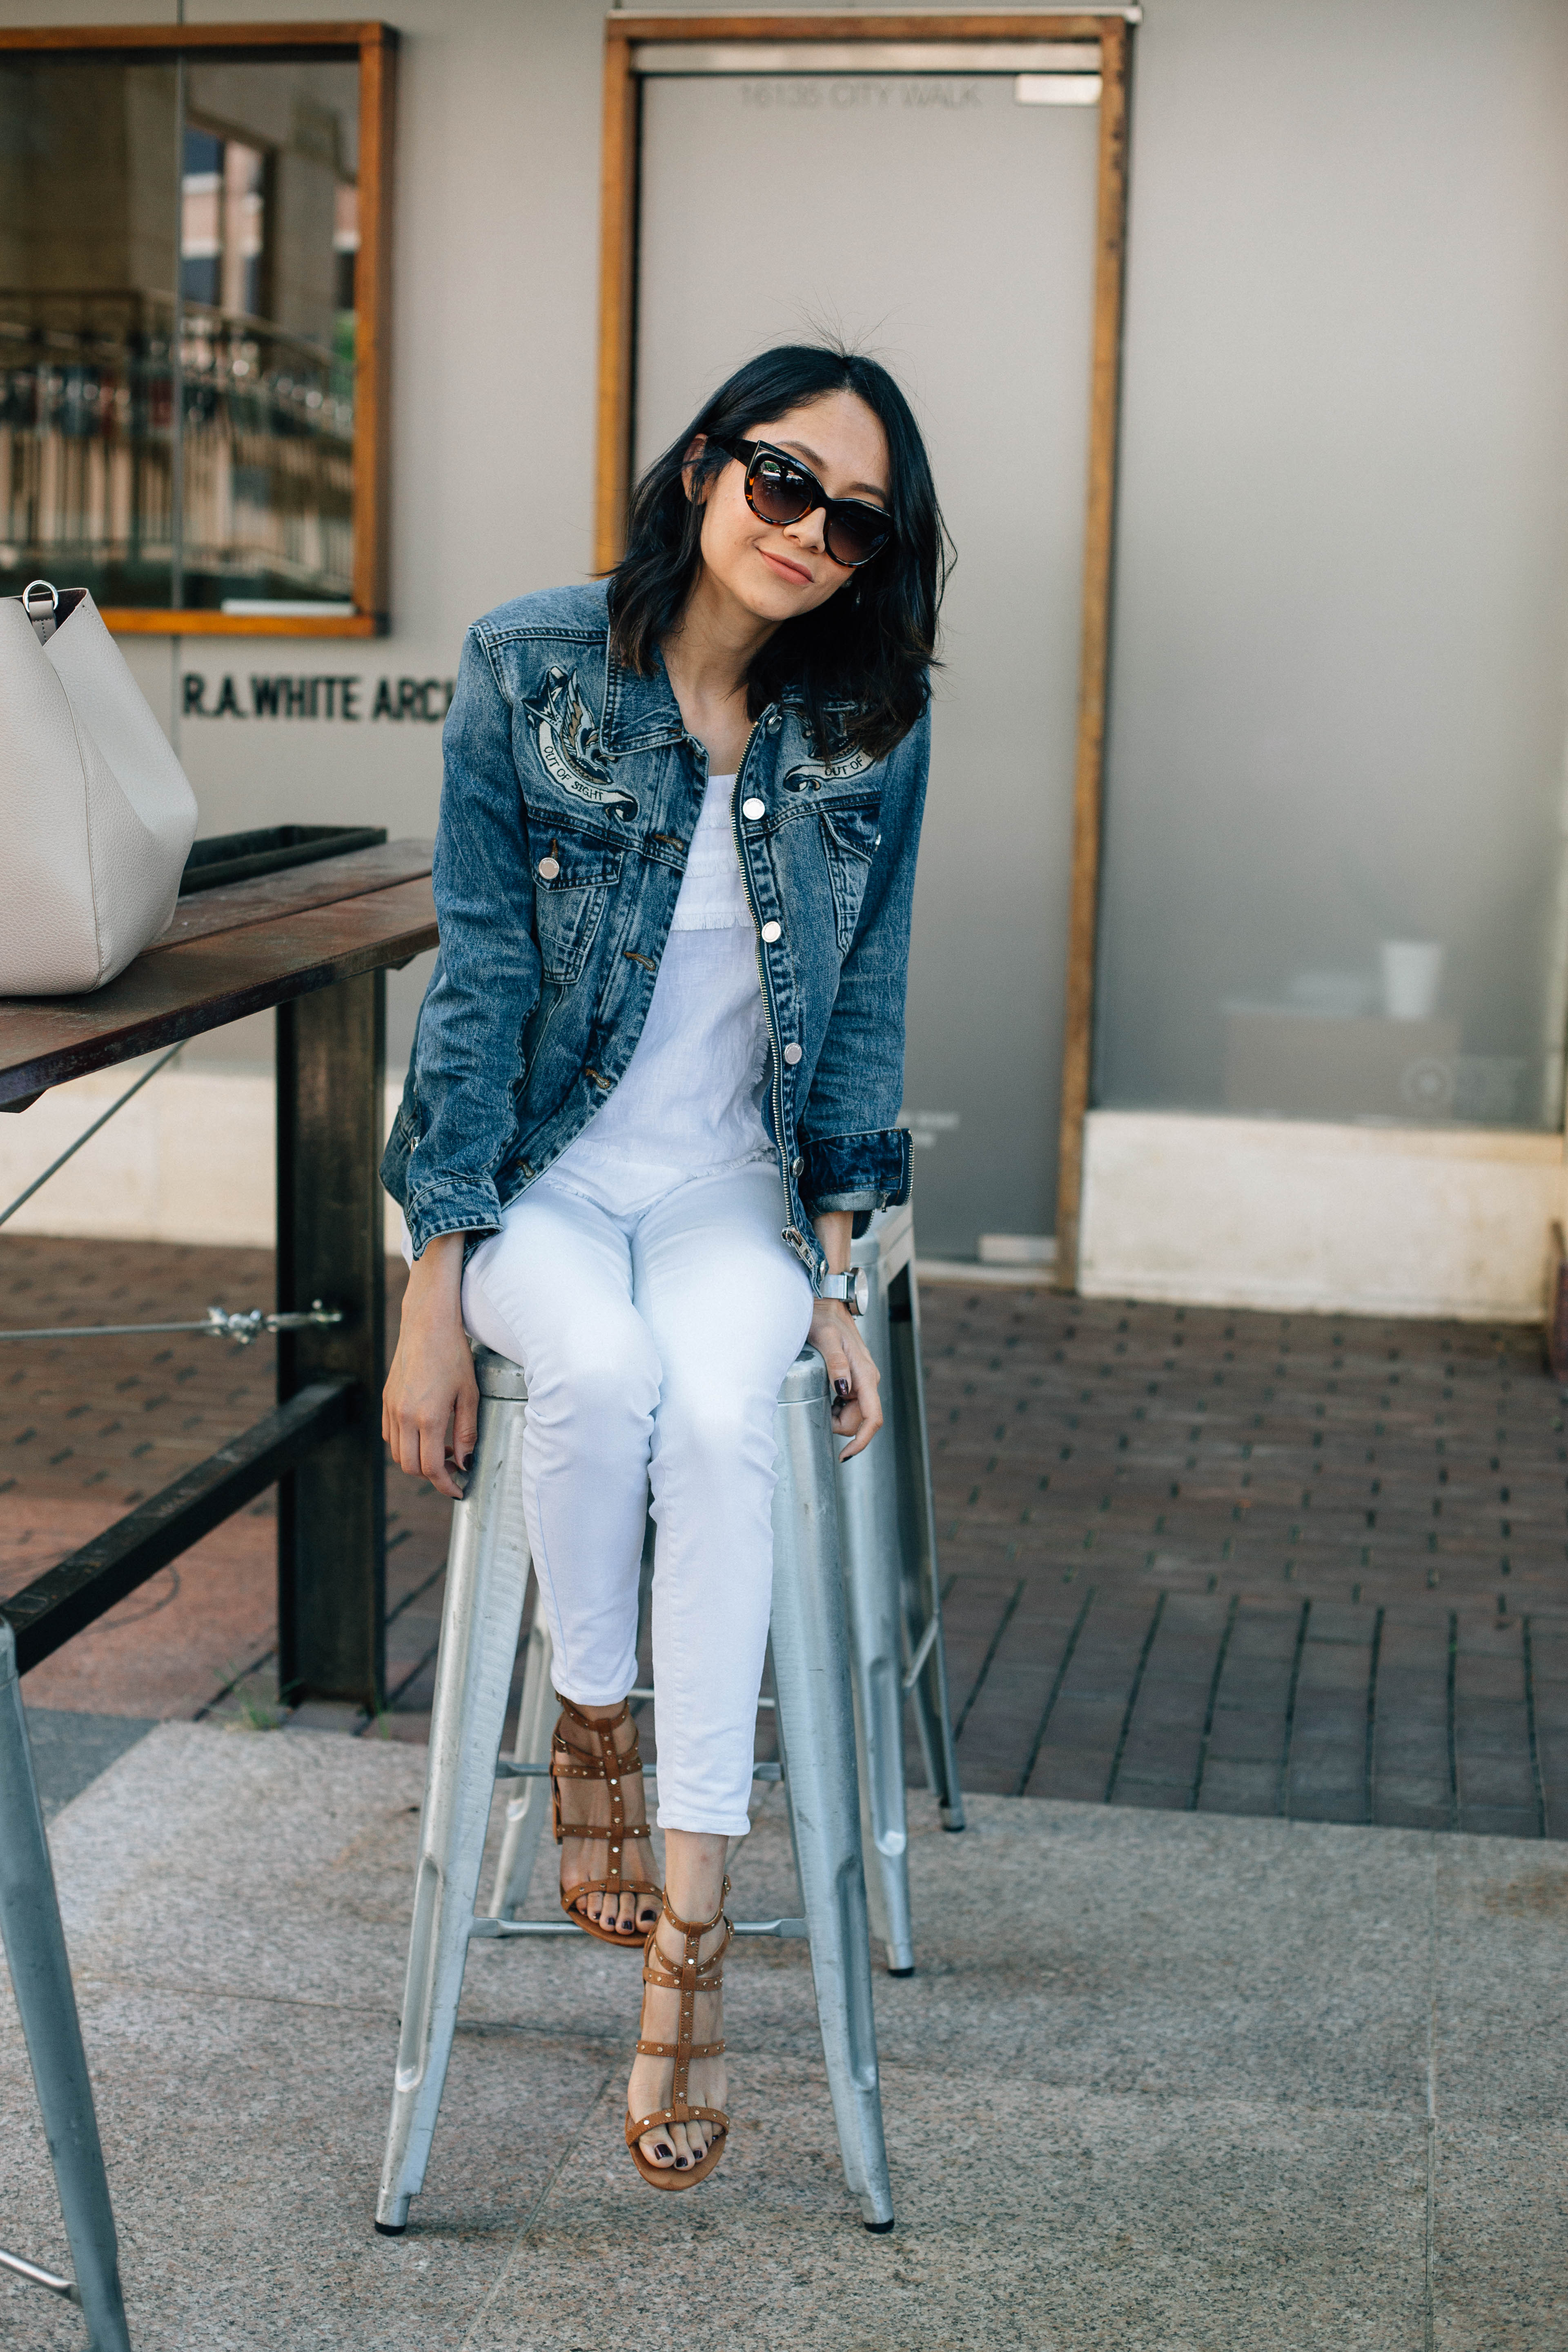 Houston Lifestyle blogger Lilly Beltran in an embroidered denim jacket and white denim